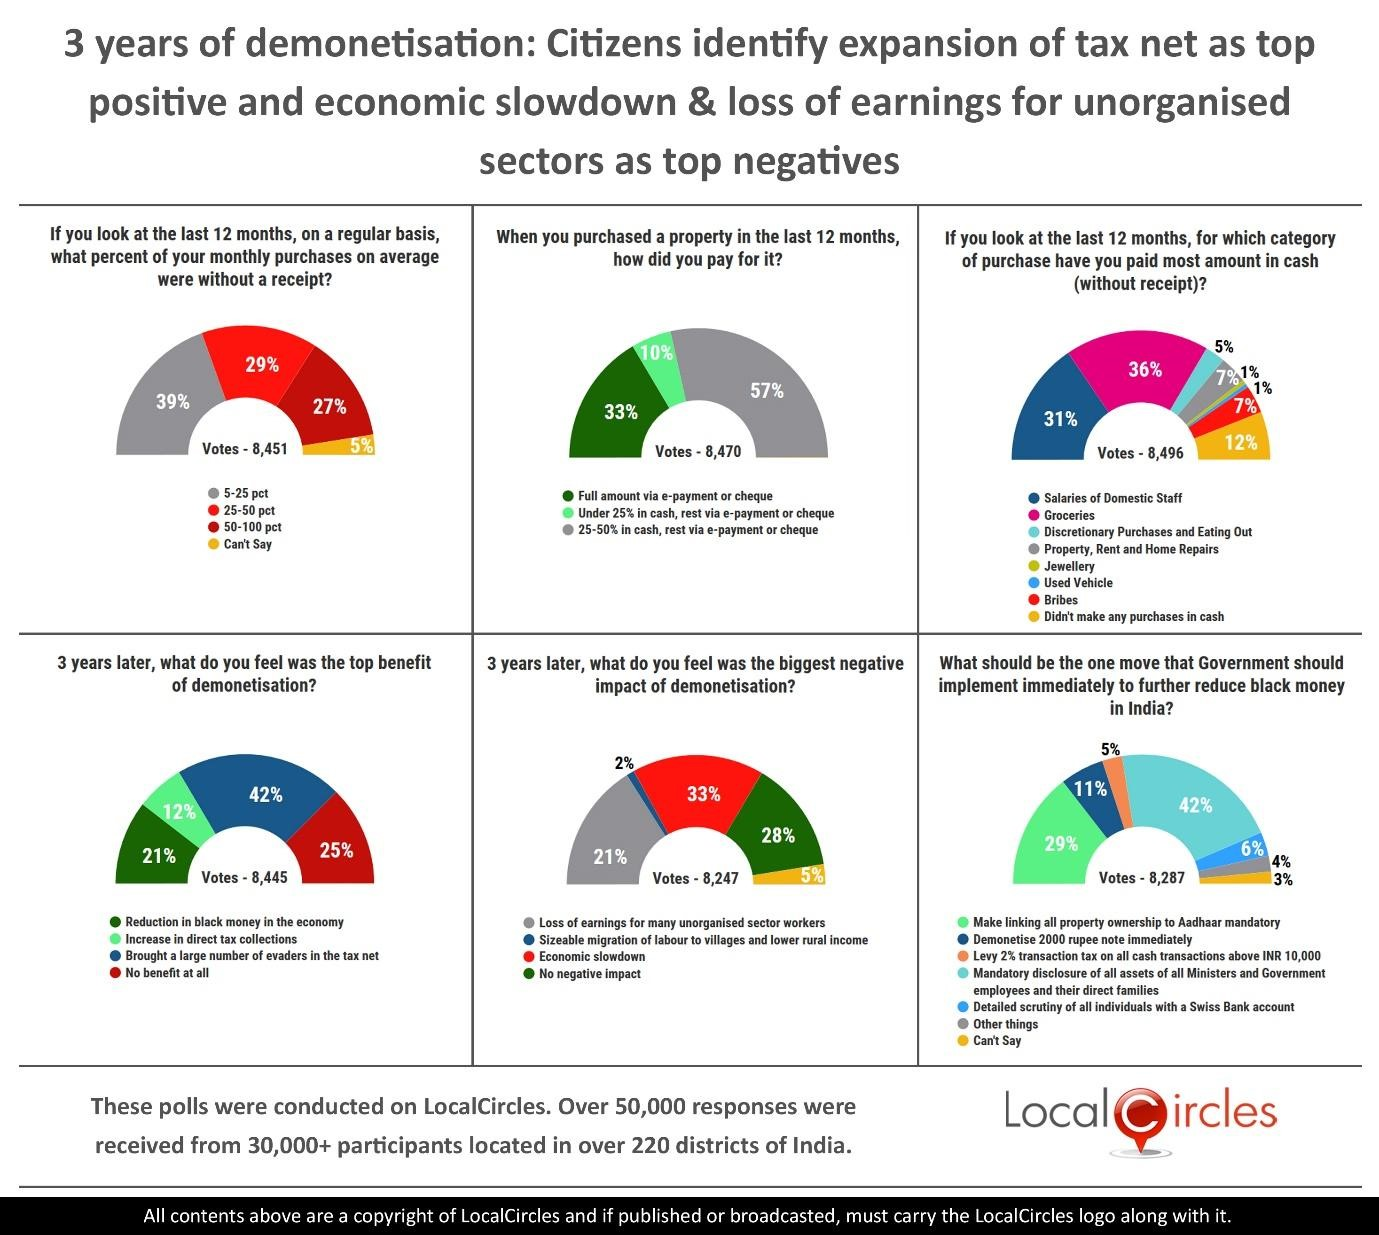 LocalCircles Poll - 3 years of demonetisation: Citizens identify the expansion of tax net as top positive and economic slowdown & loss of earnings for unorganised sectors as top negatives